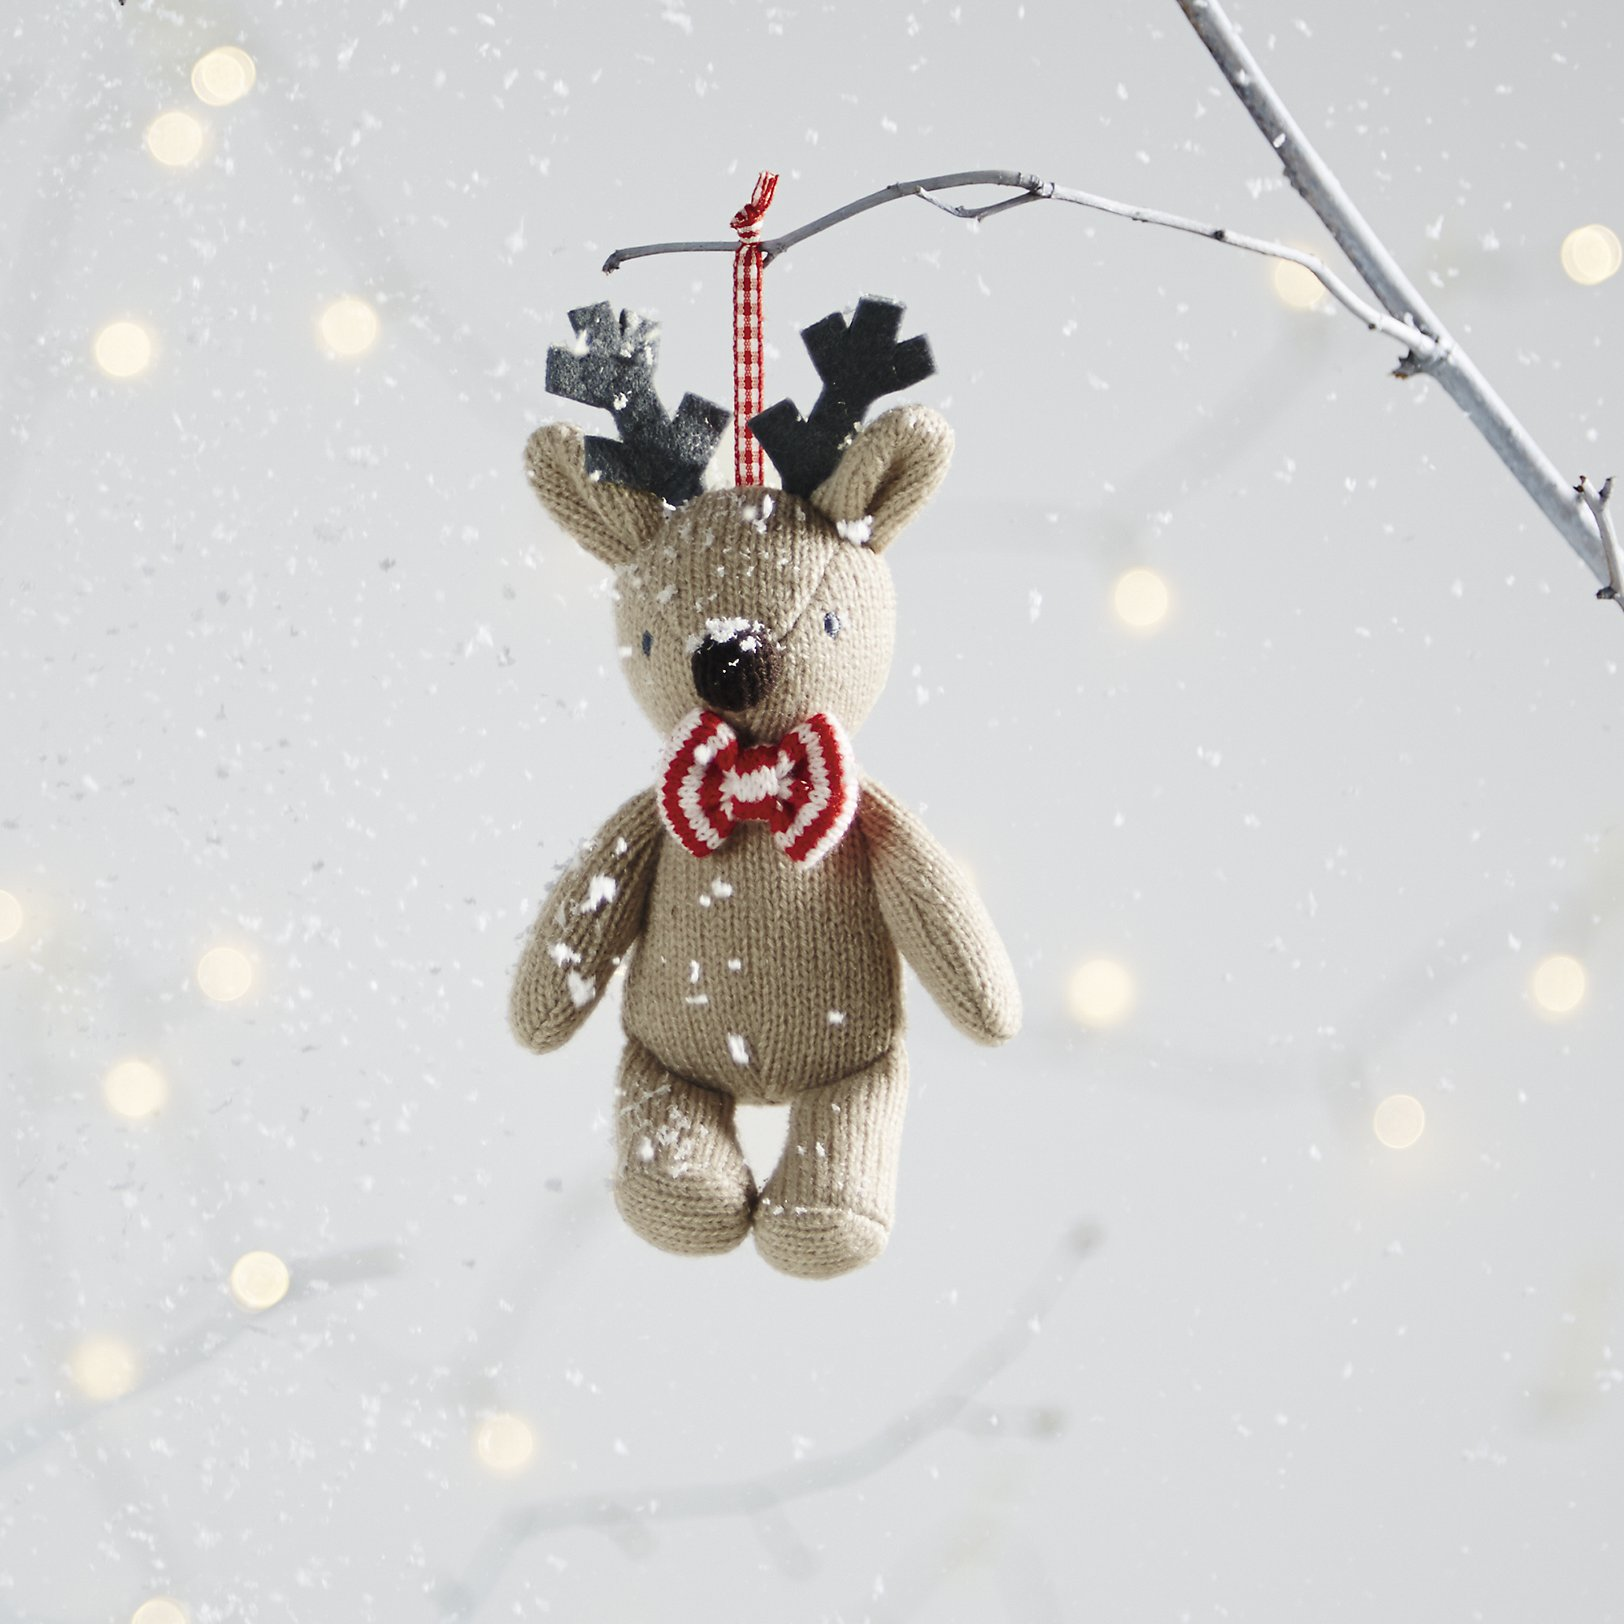 White christmas decorations - Knitted Reindeer Decoration